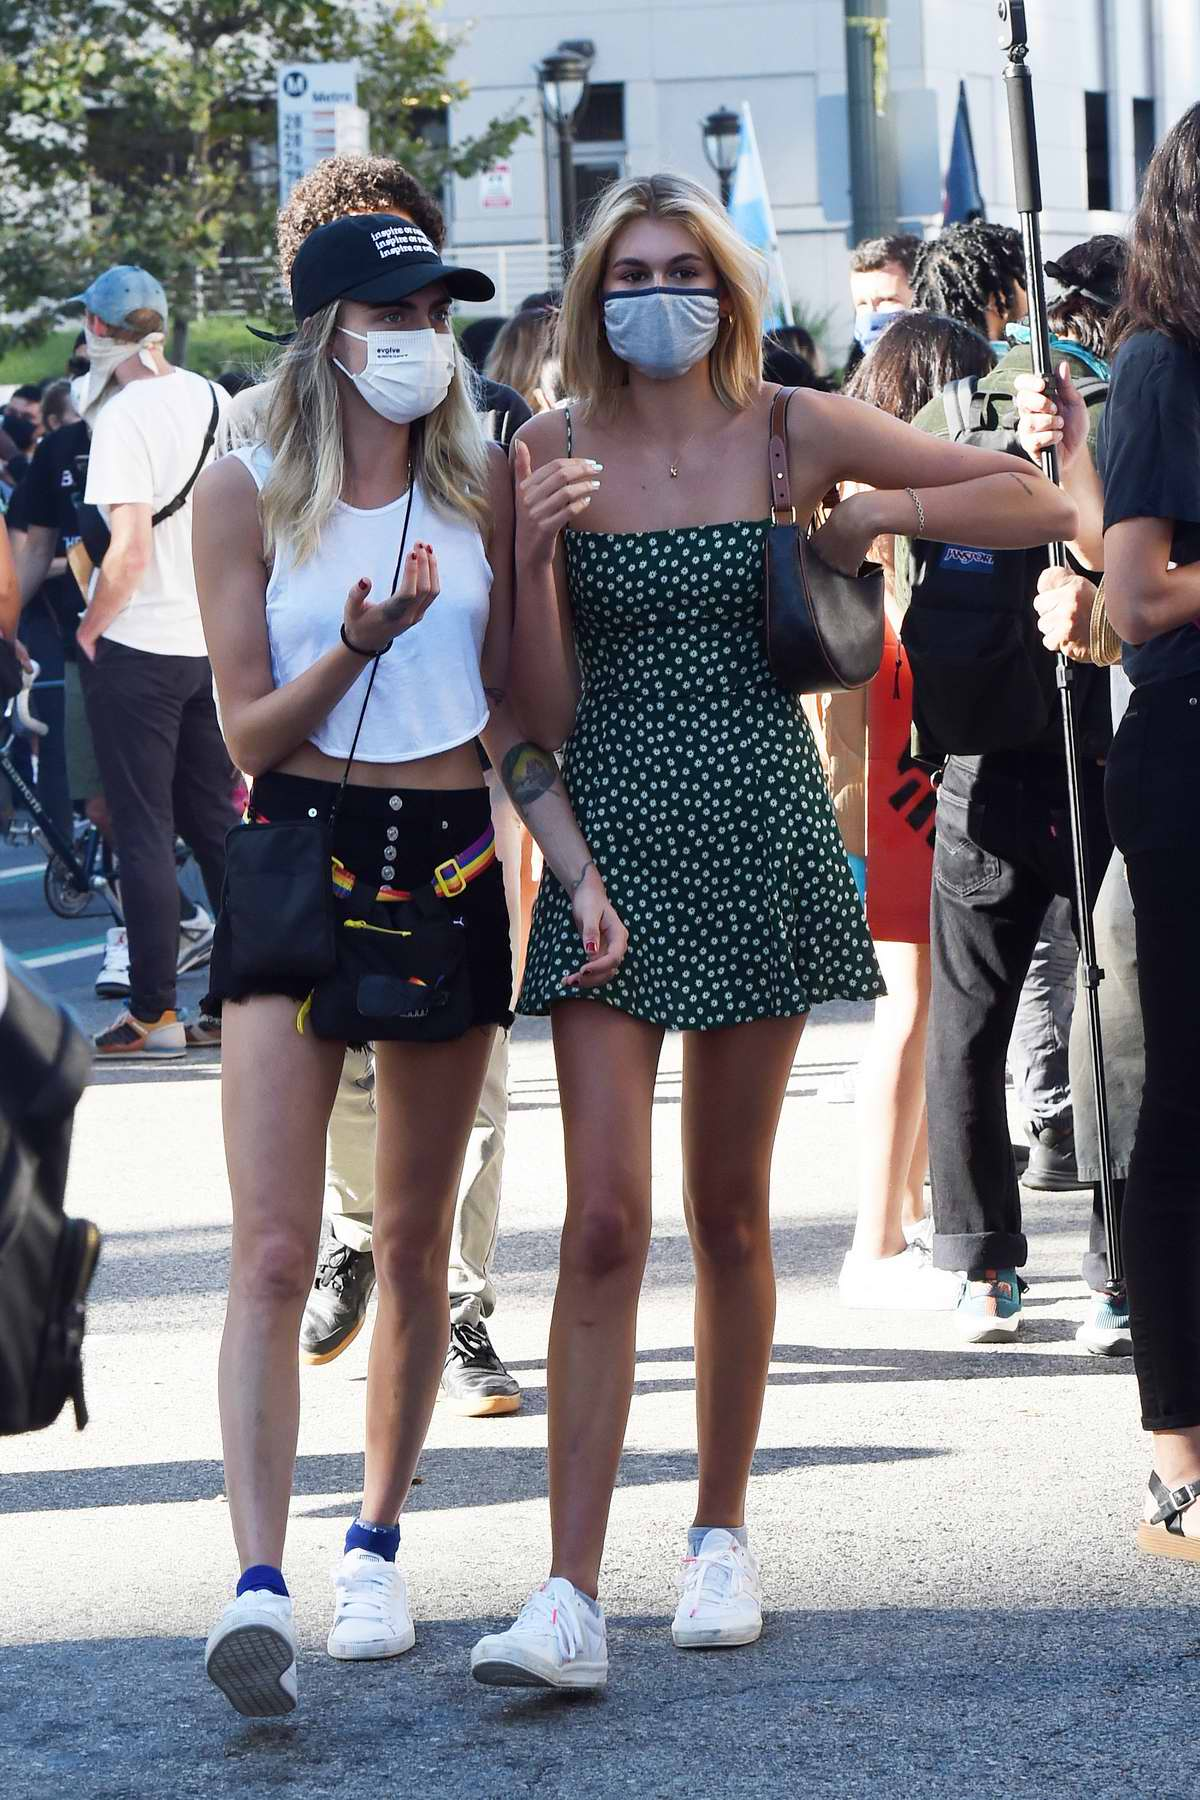 Cara Delevingne and Margaret Qualley walk hand in hand with Kaia Gerber while attending a BLM protest in Los Angeles